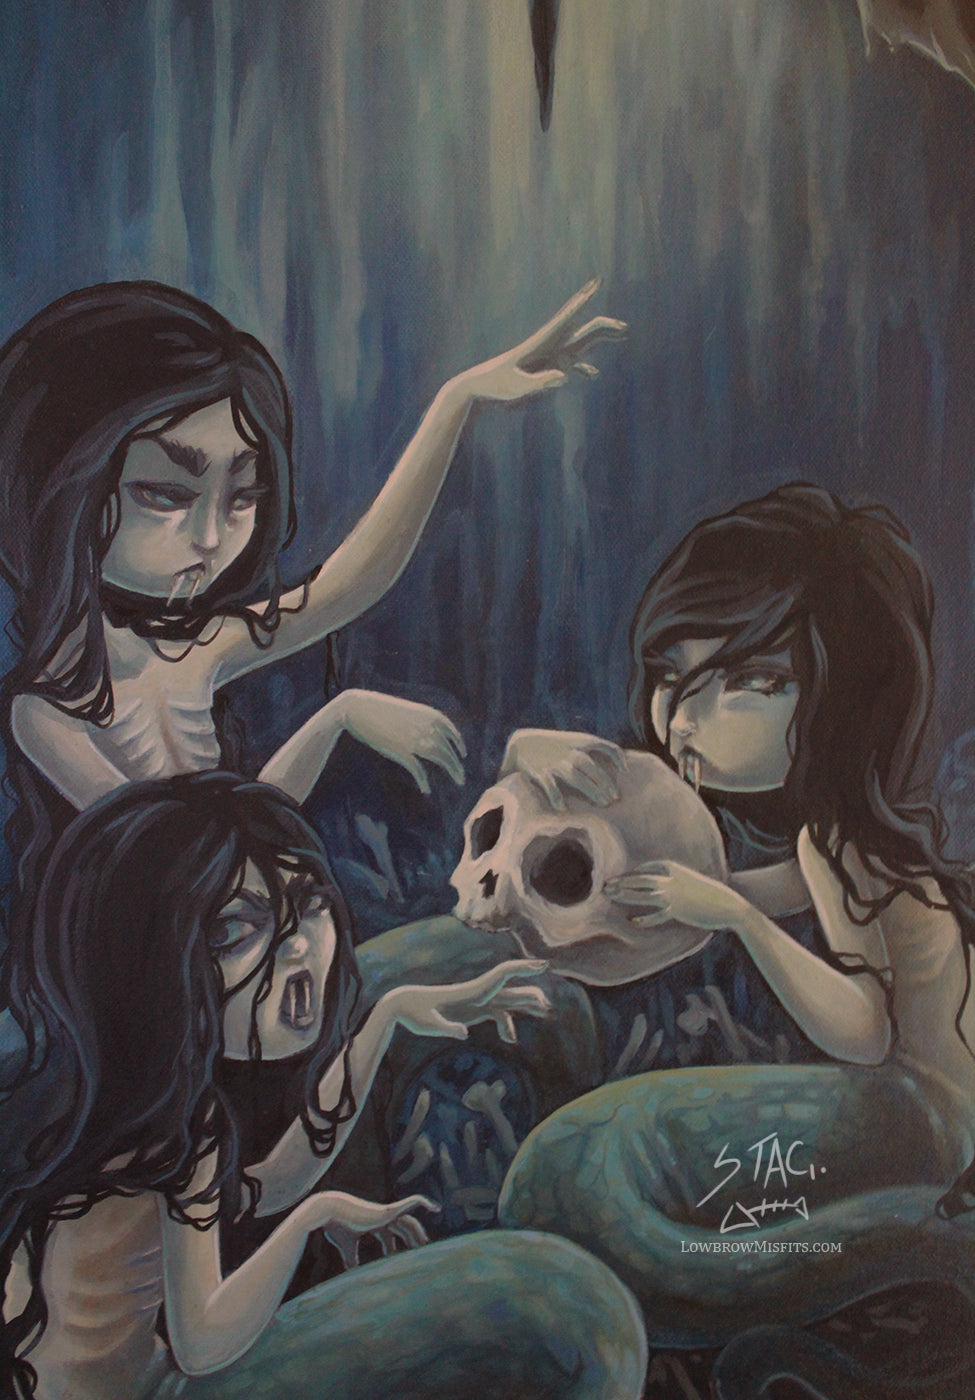 The Lair- Original mermaid serpent painting -Lowbrow misfits White Stag Art